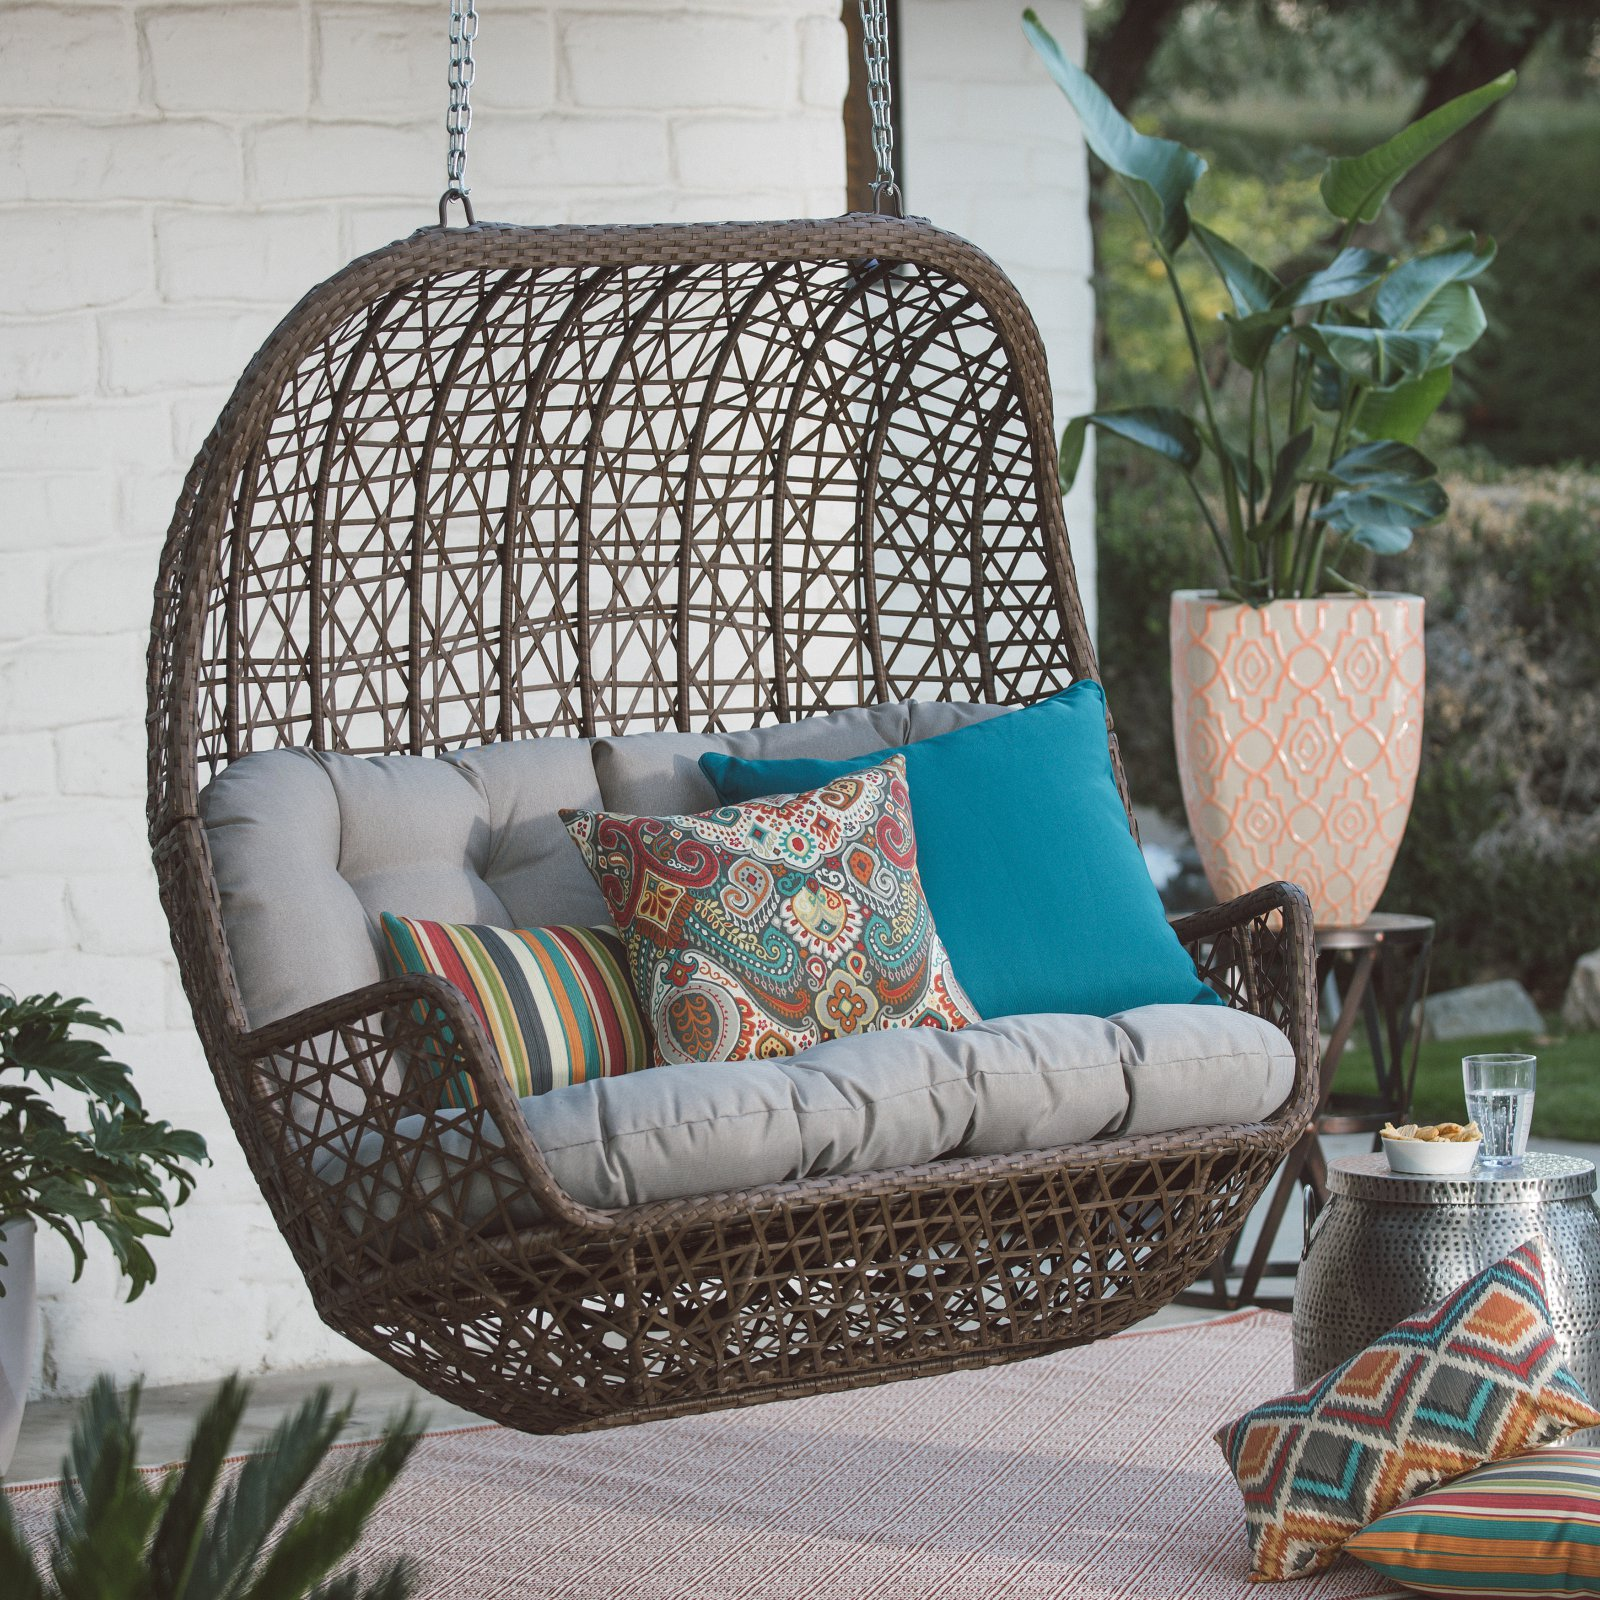 Belham Living Rayna All Weather Wicker Loveseat Porch Swing with Cushion by